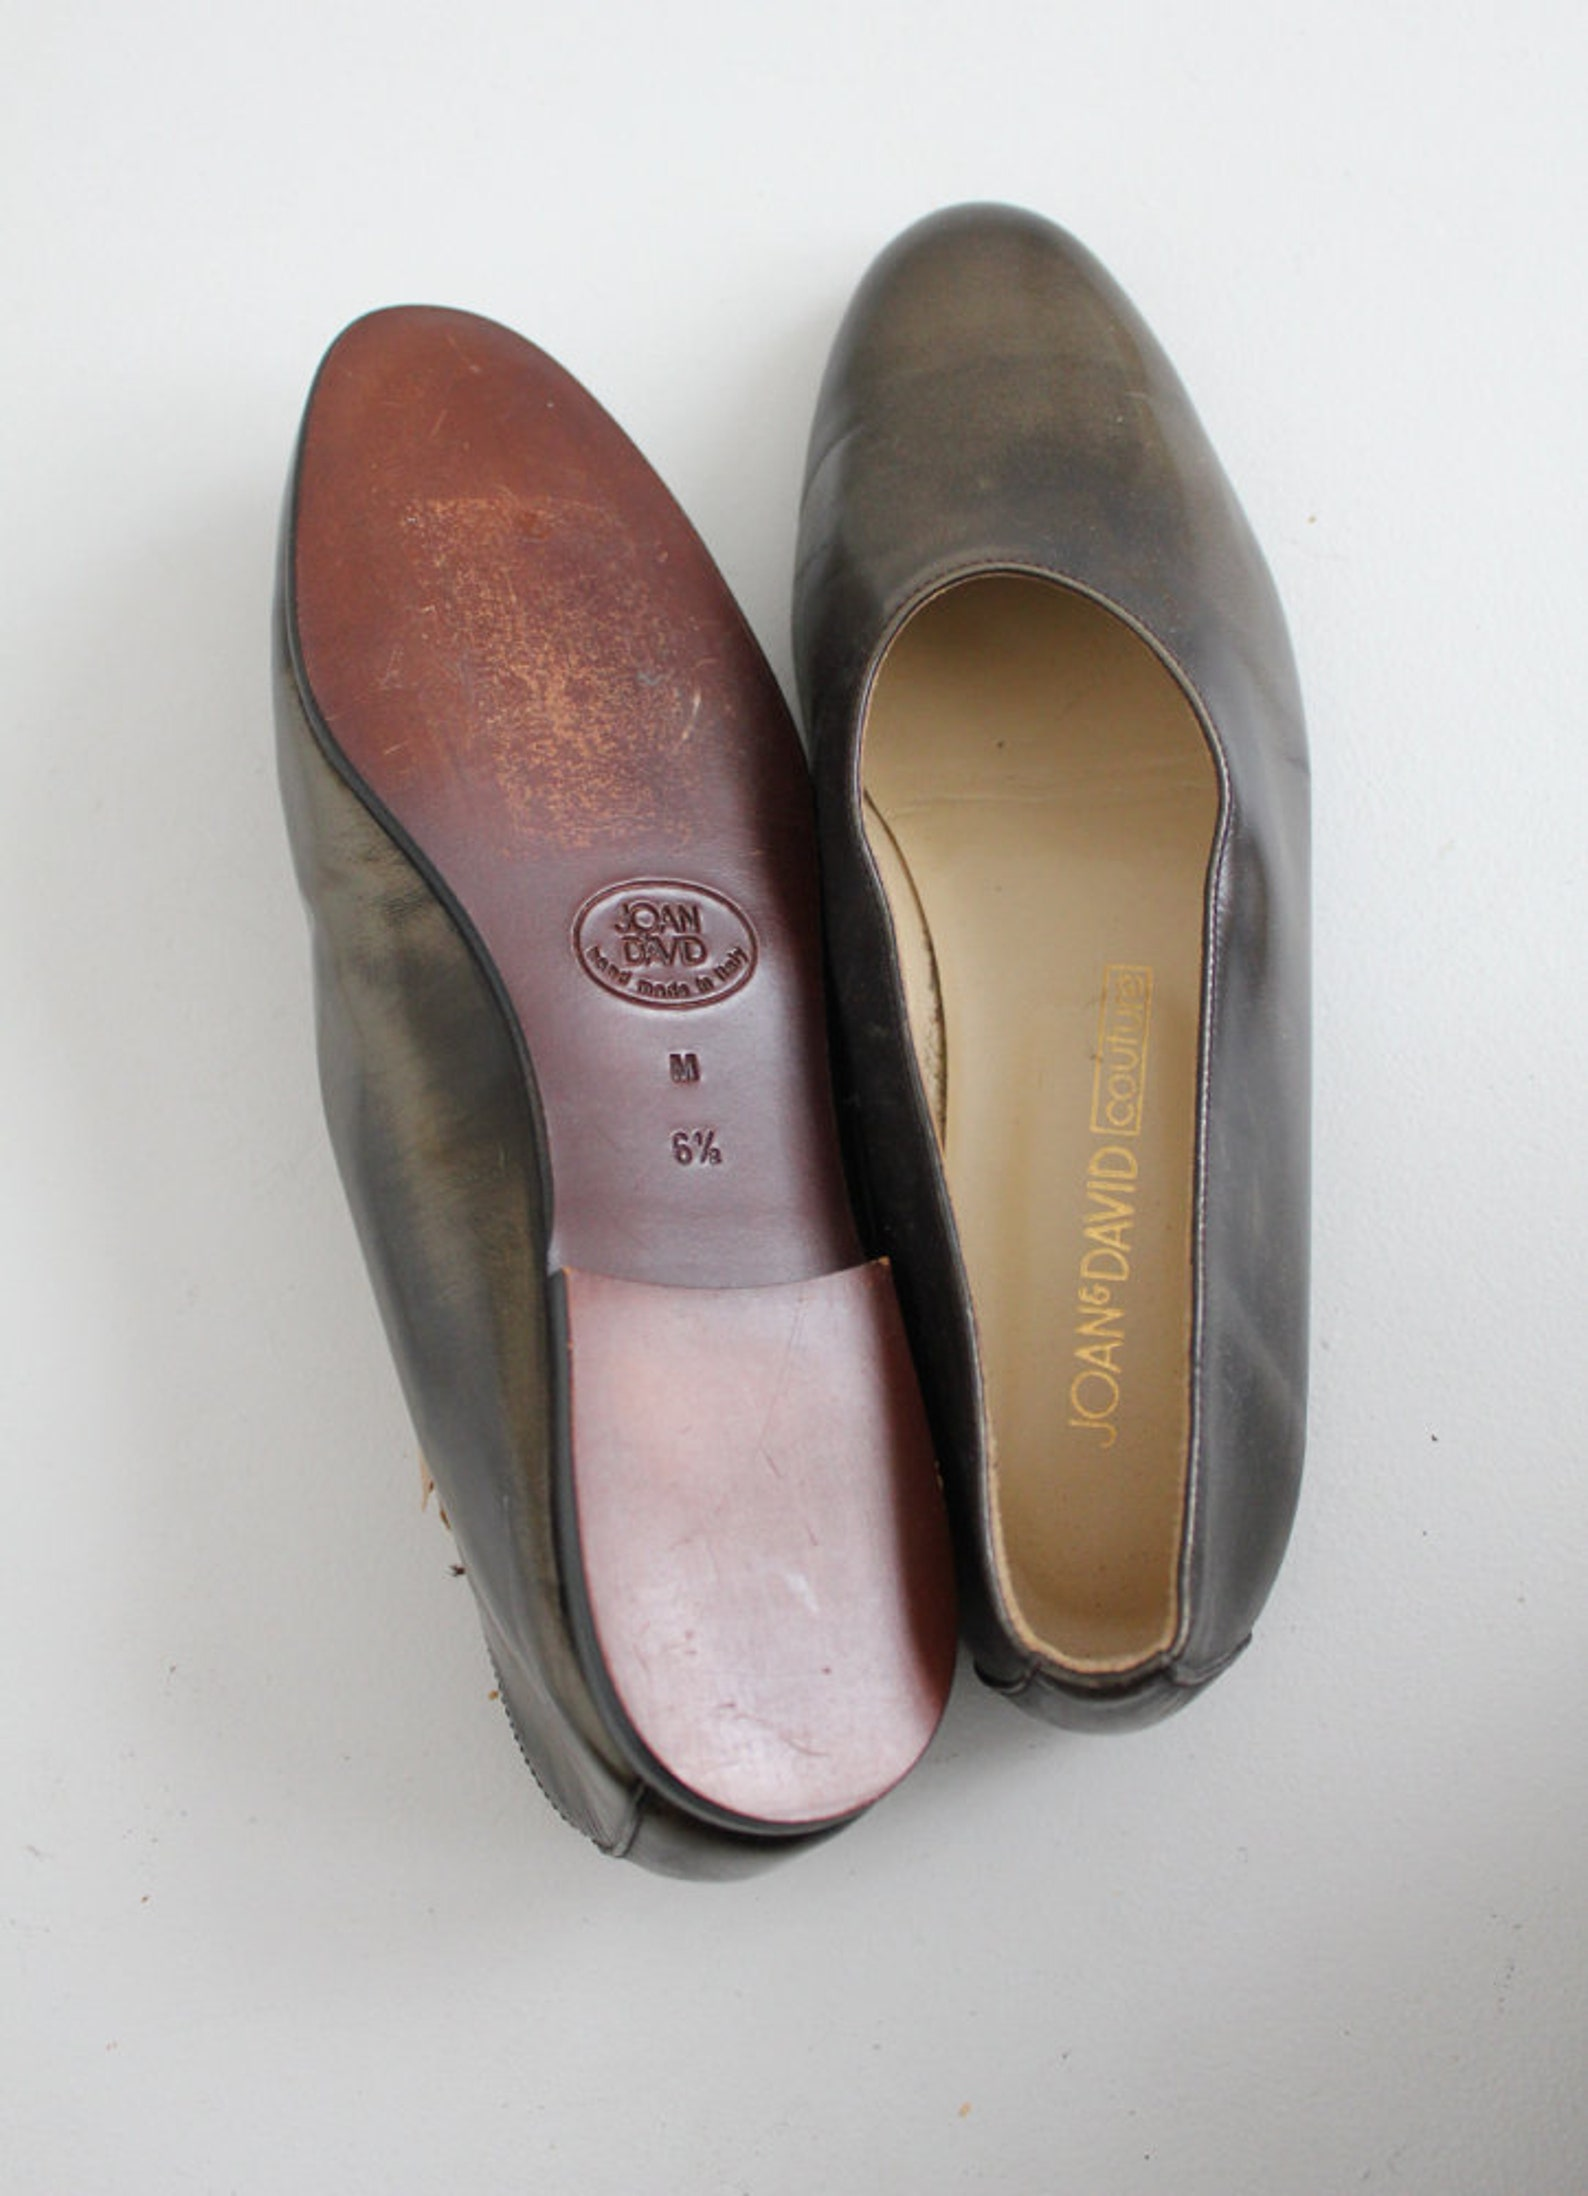 marbled metallic ballet flats | glove shoes 6.5 | metallic leather flats 6